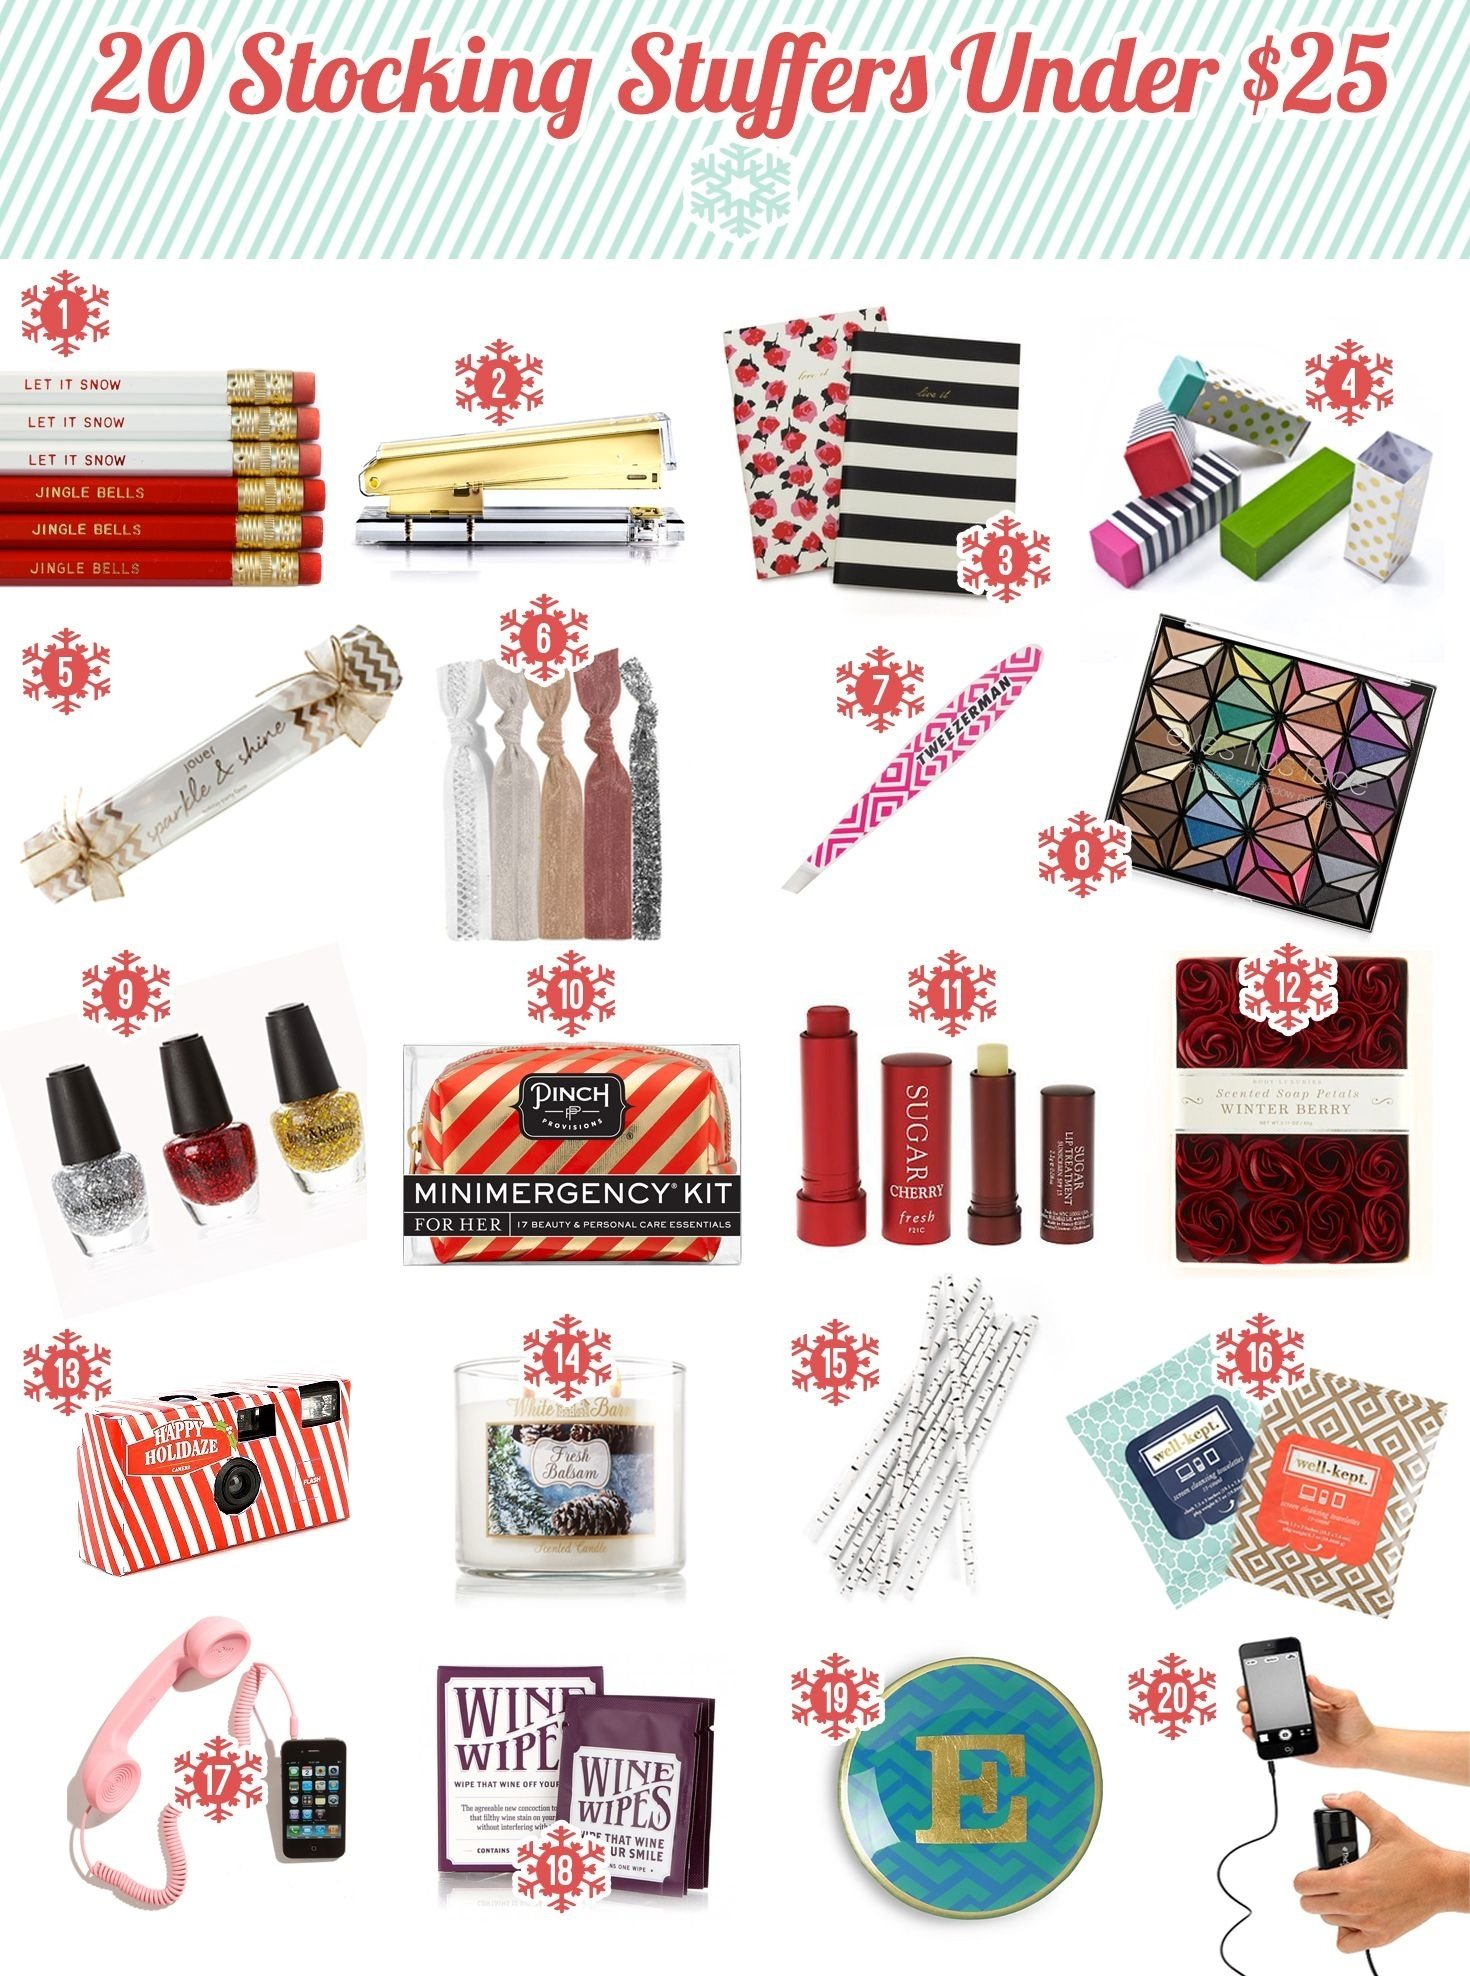 10 Great 2013 Gift Ideas For Women 2013 holiday gift guide secret santa gift ideas under 25 most are 9